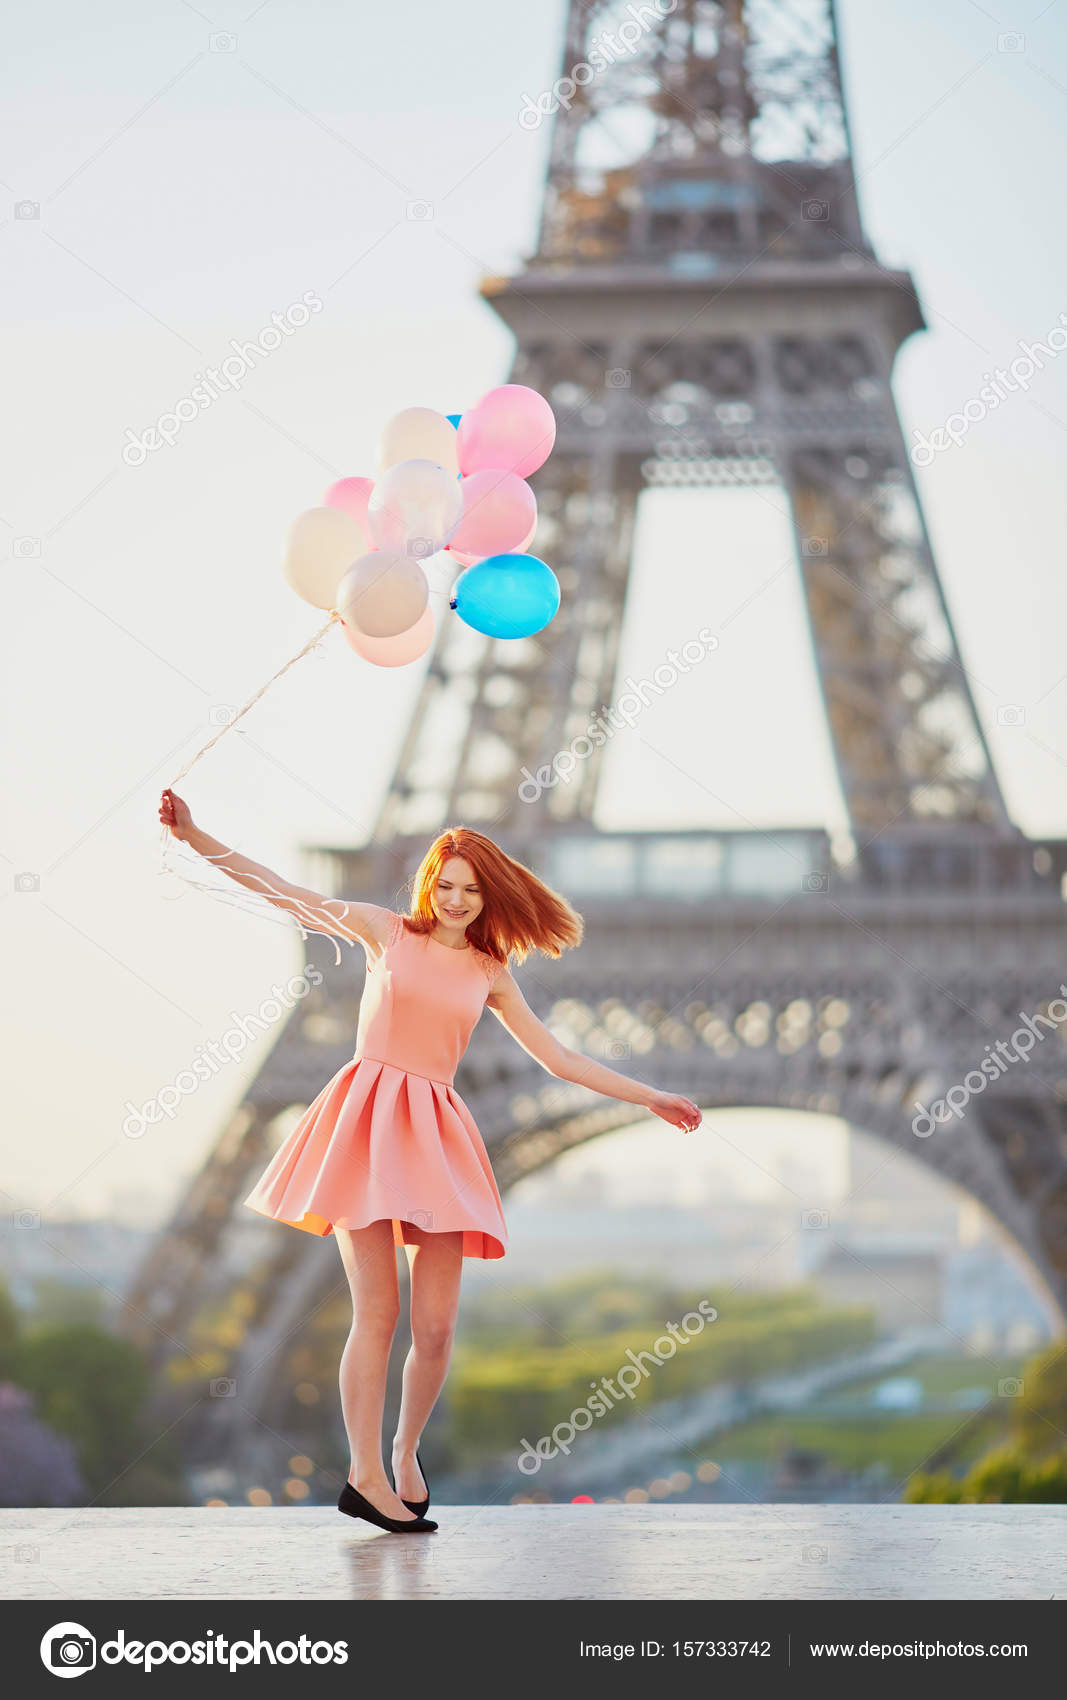 Excellent Fille avec bouquet de ballons devant la Tour Eiffel à Paris  HP71